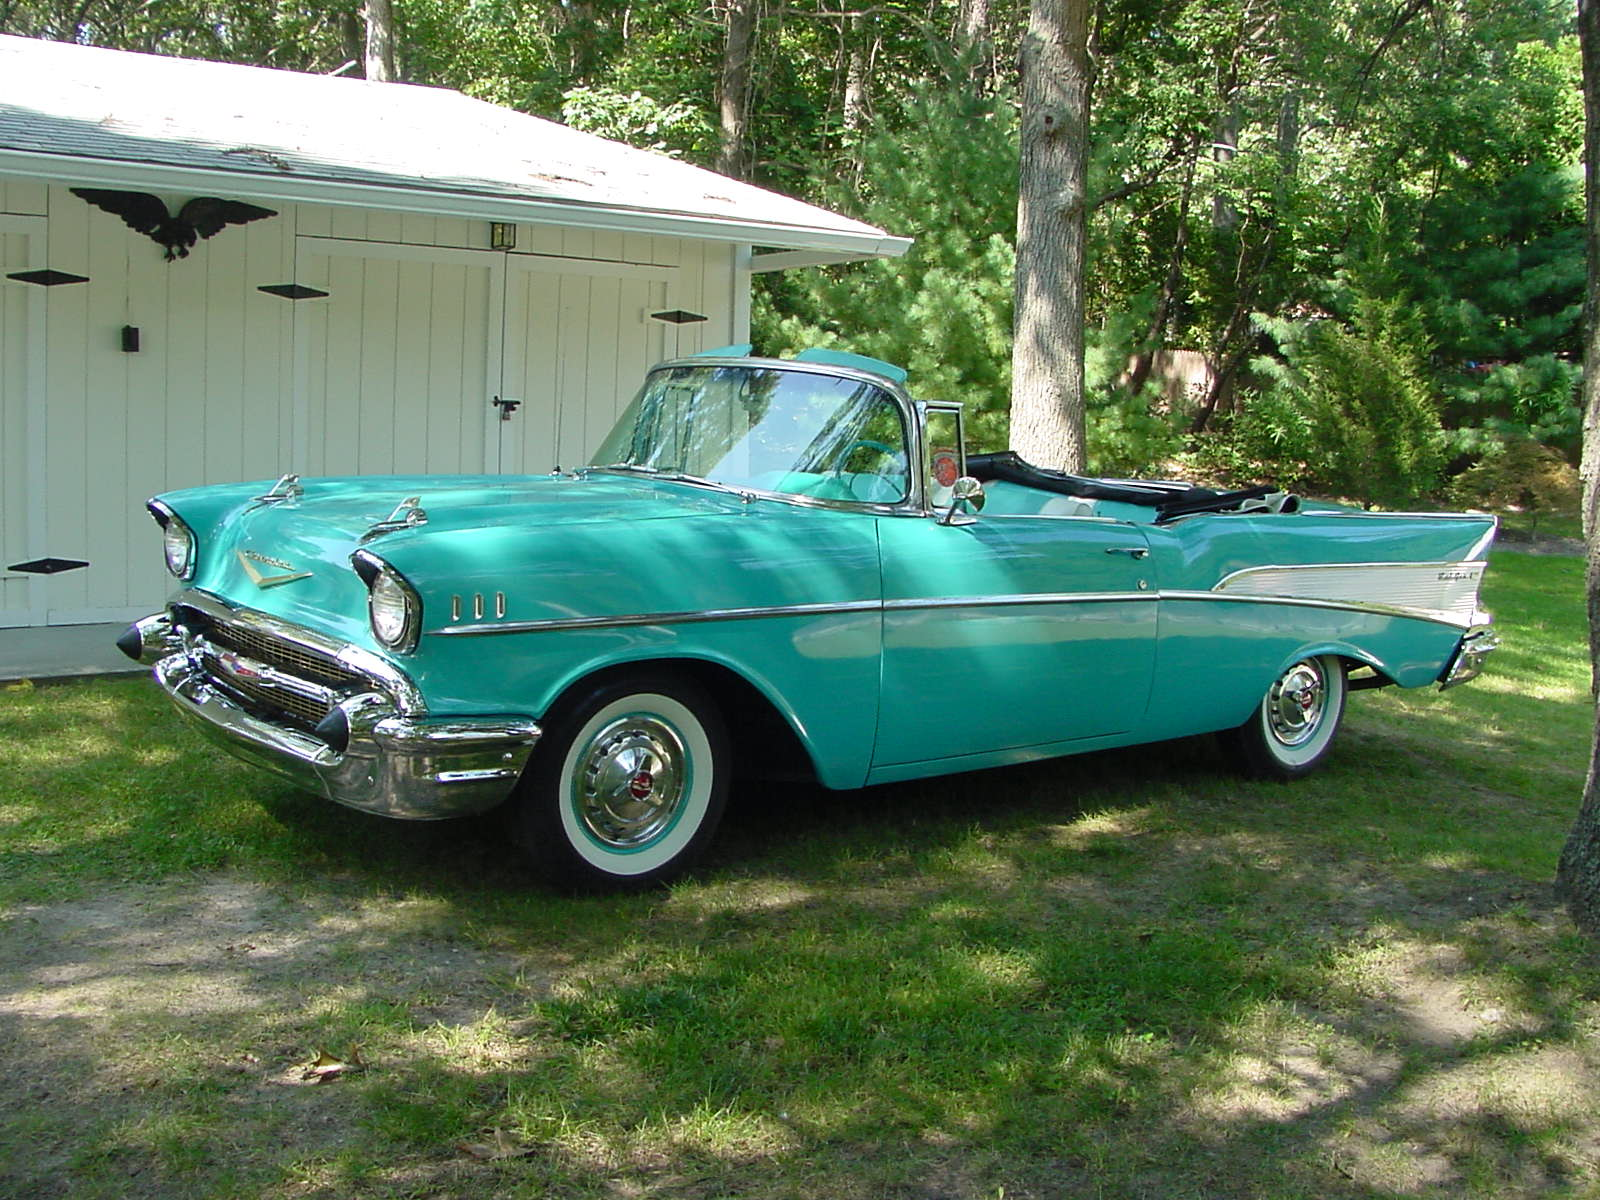 Chevrolet Bel air 1957 photo - 3